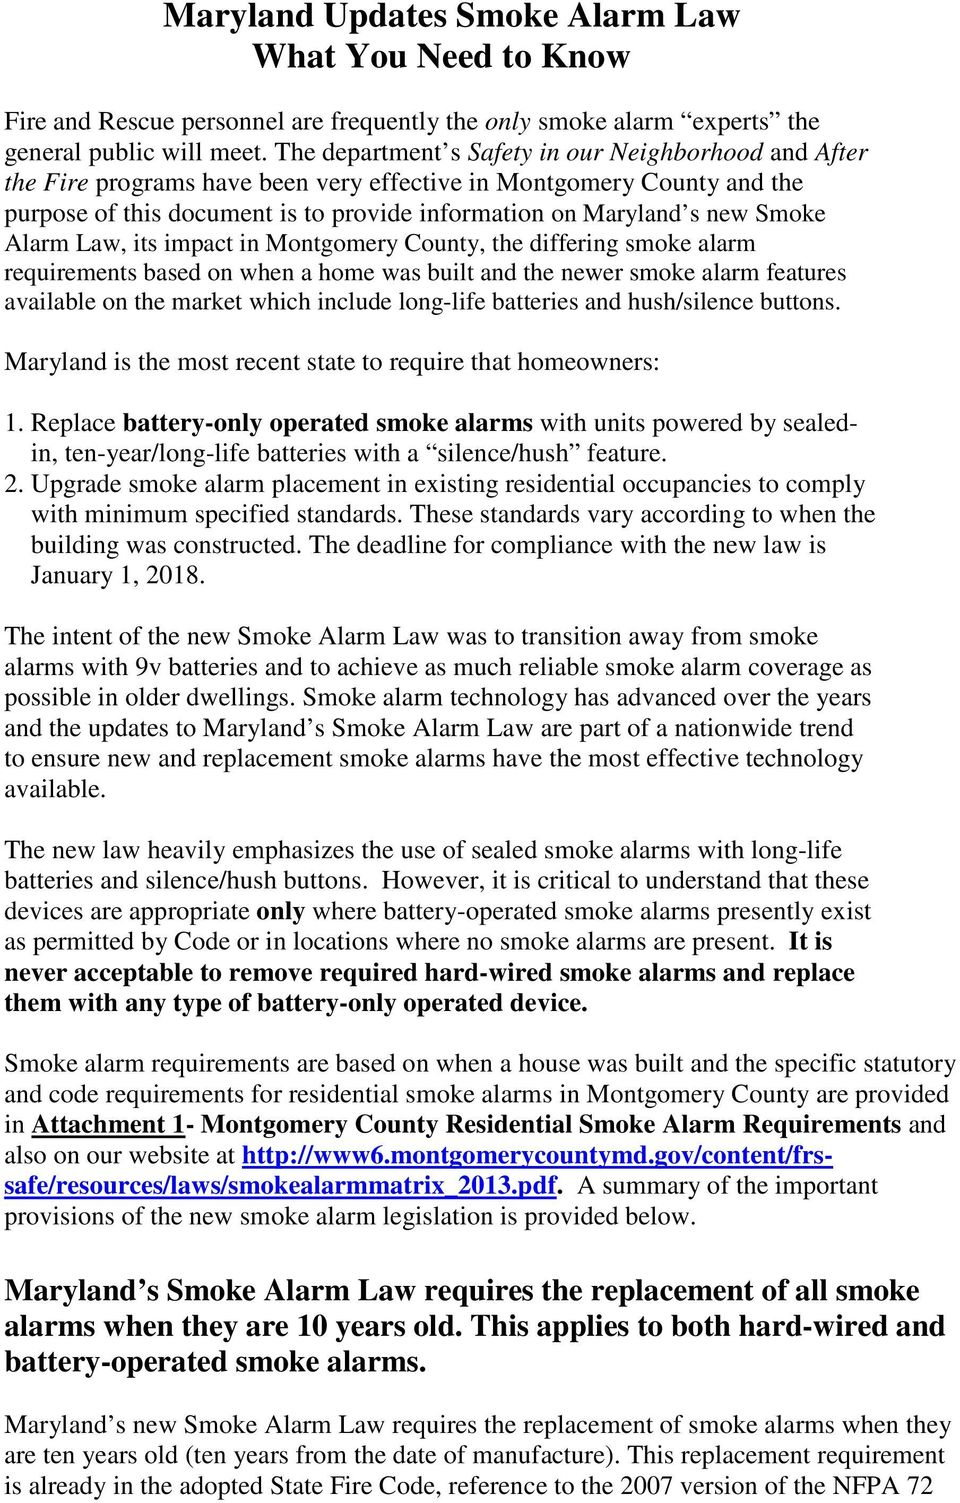 Maryland Updates Smoke Alarm Law What You Need to Know - PDF